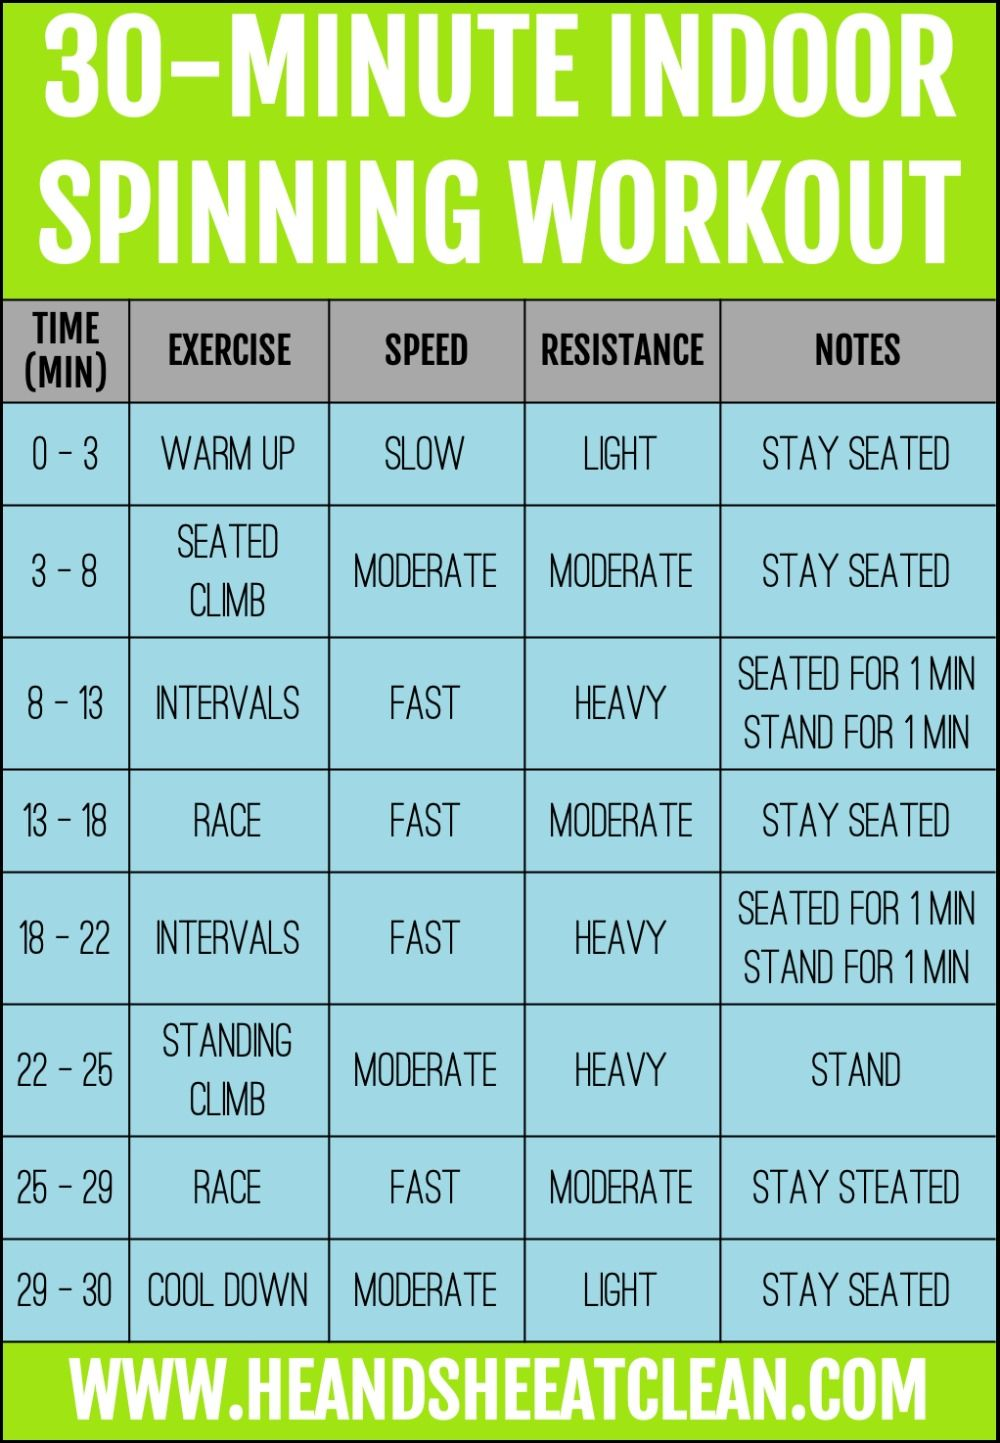 30 Minute Indoor Spinning Workout Indoor Spinning Workouts